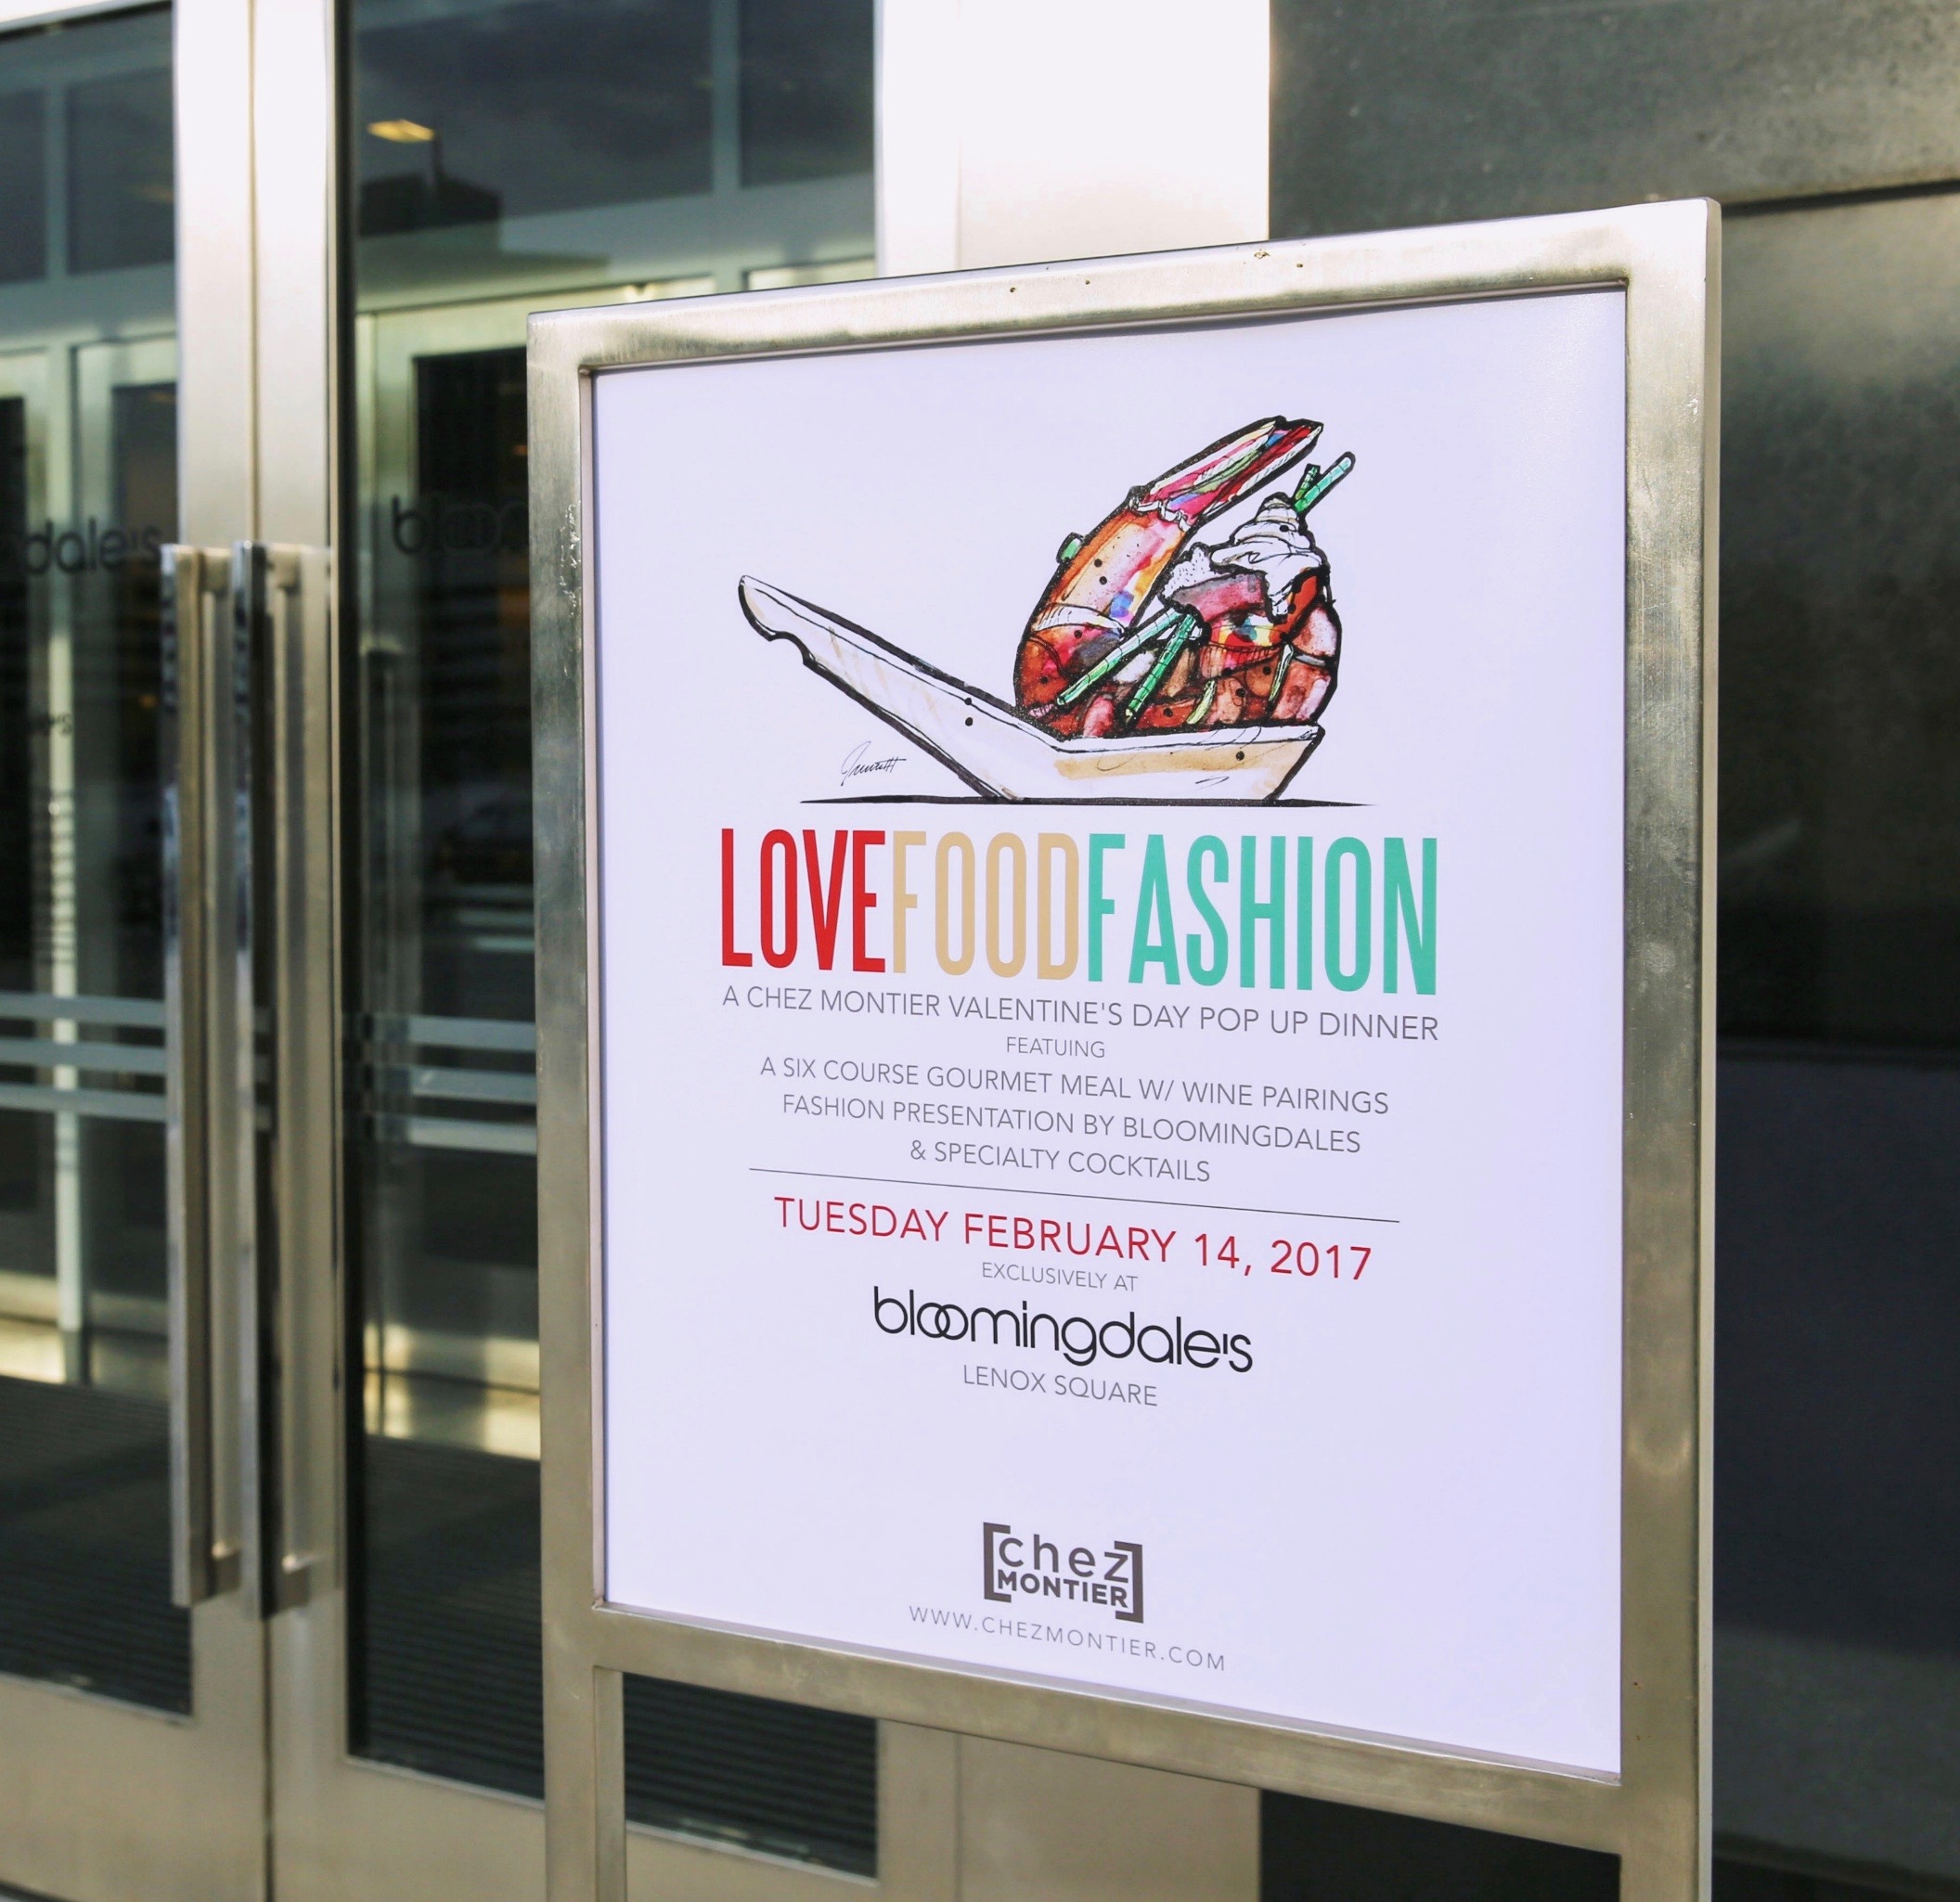 LOVEFOODFASHION Signage at Bloomingdale's